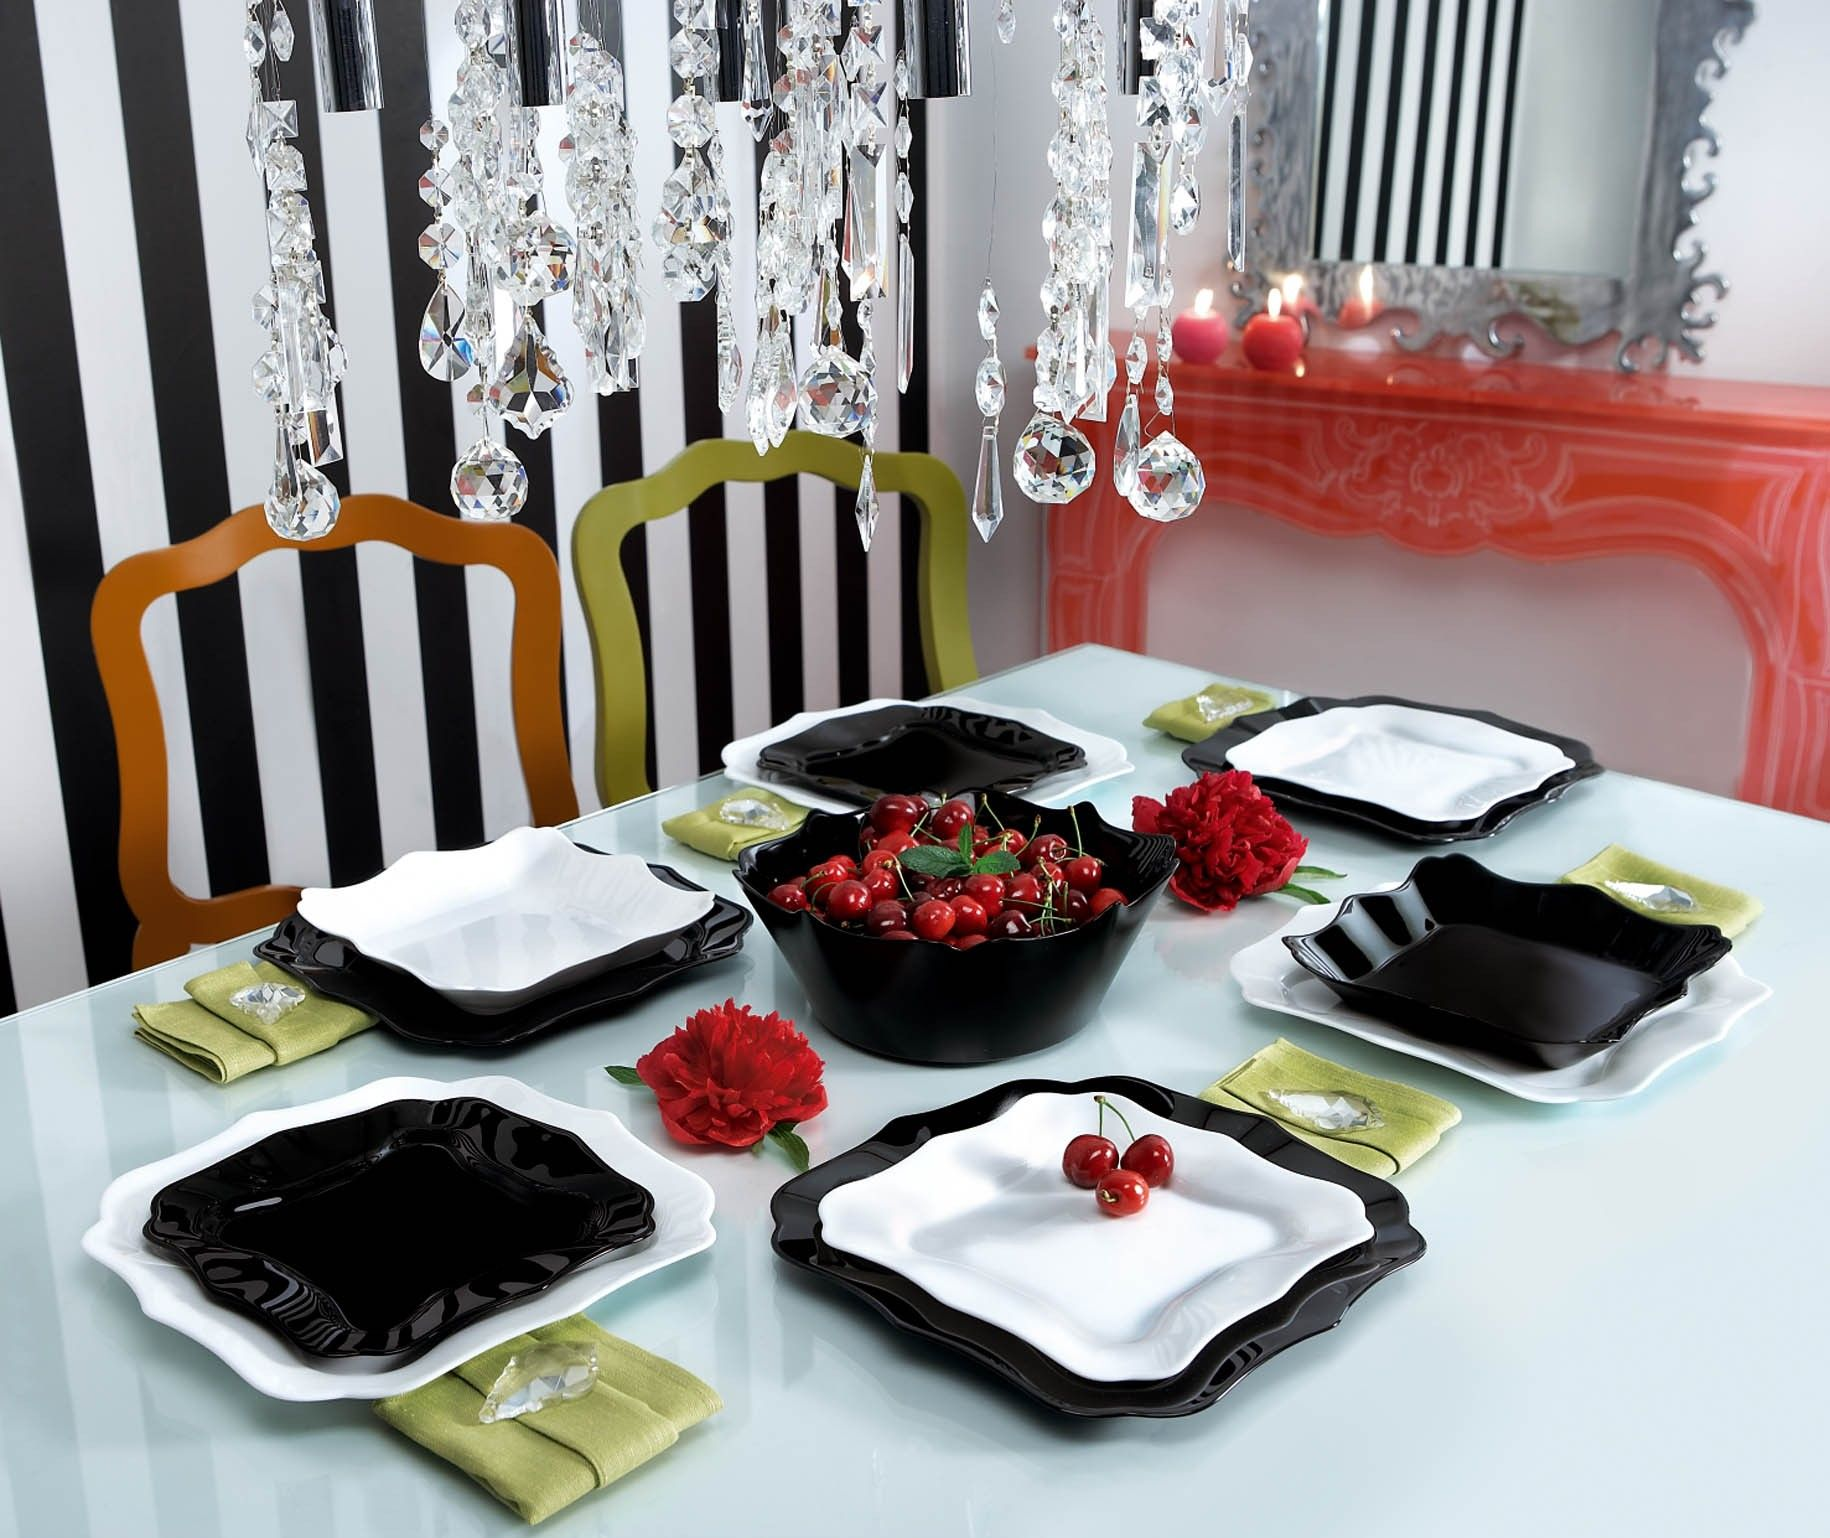 dinnerware set authentic noir blanc by luminarc la table d 39 arcwantplates to watch. Black Bedroom Furniture Sets. Home Design Ideas